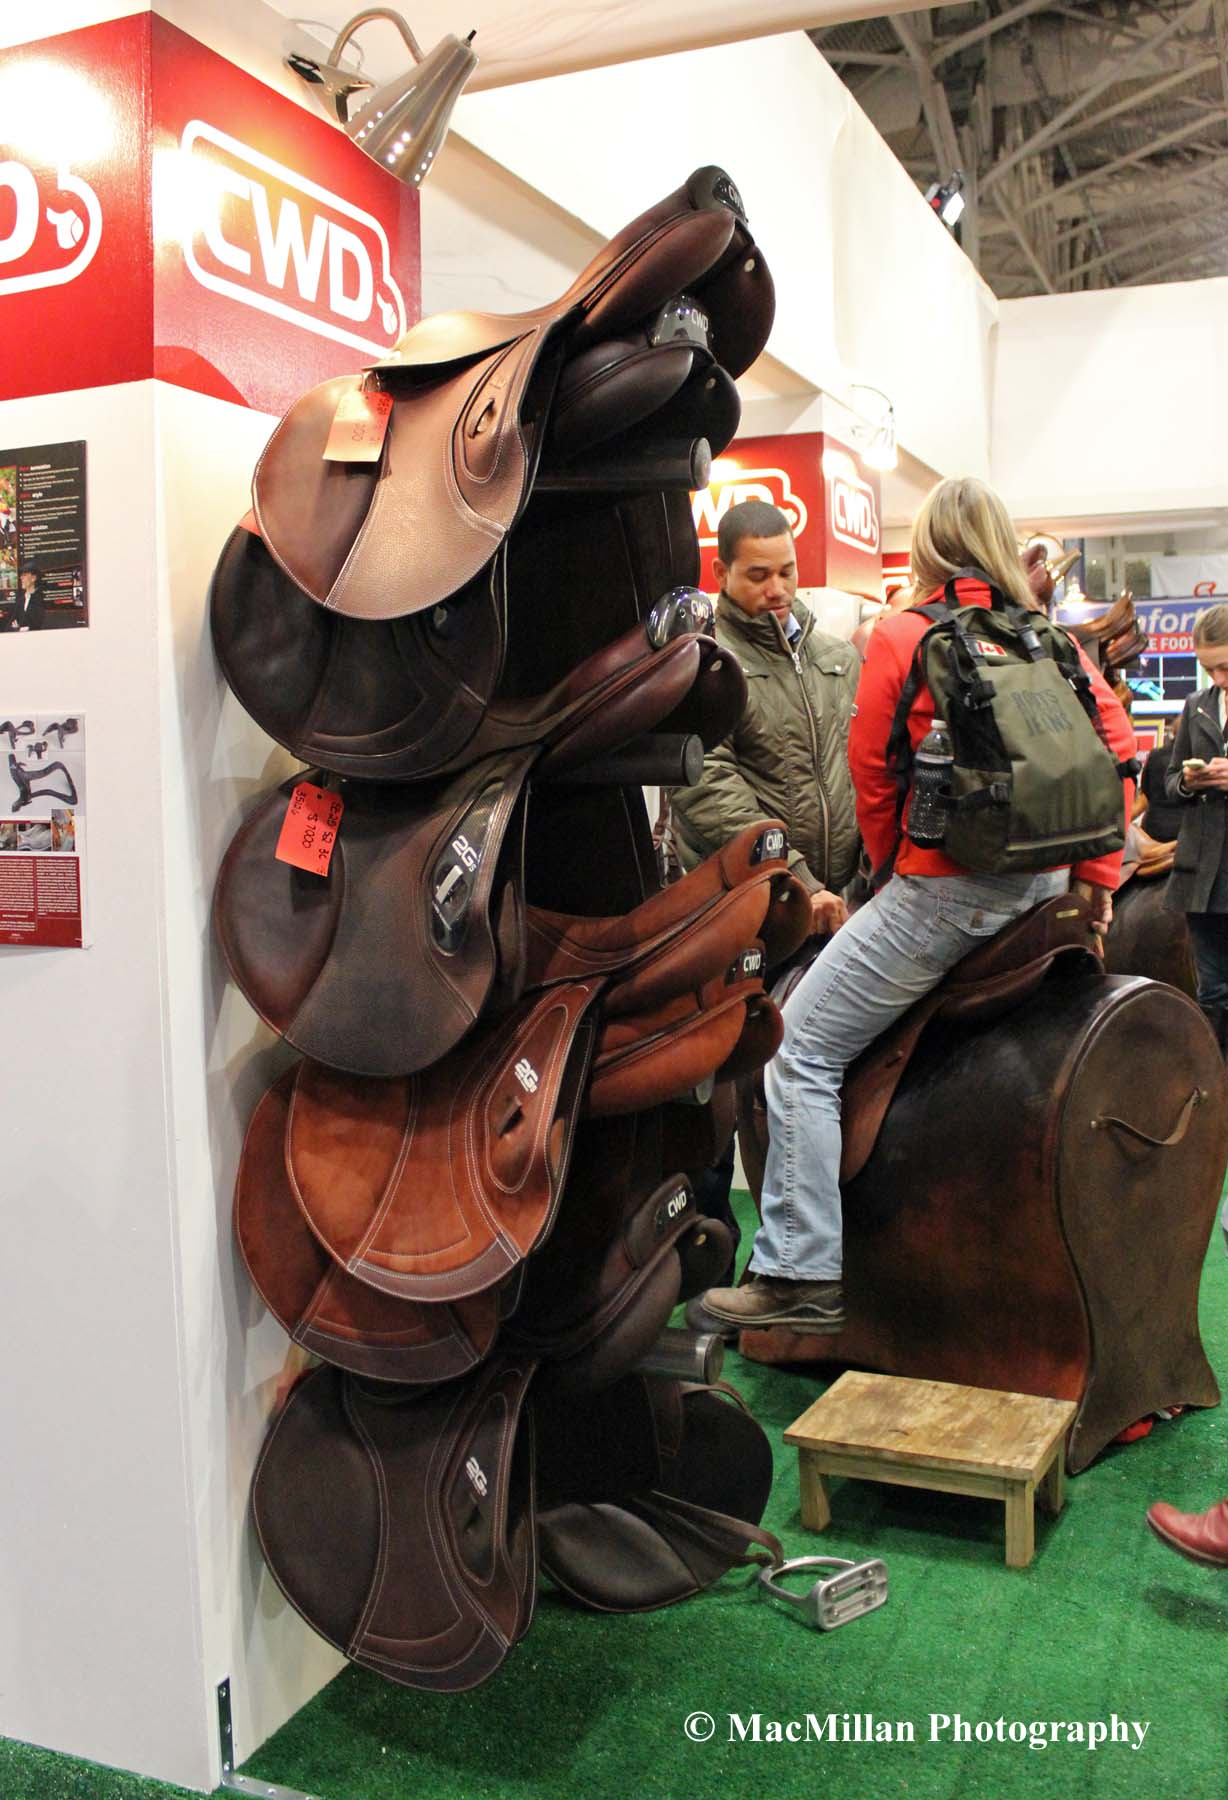 Photo 57 – CWD saddles are also for sale in the Royal trade fair. Photo by Shelley Higgins/MacMillan Photography